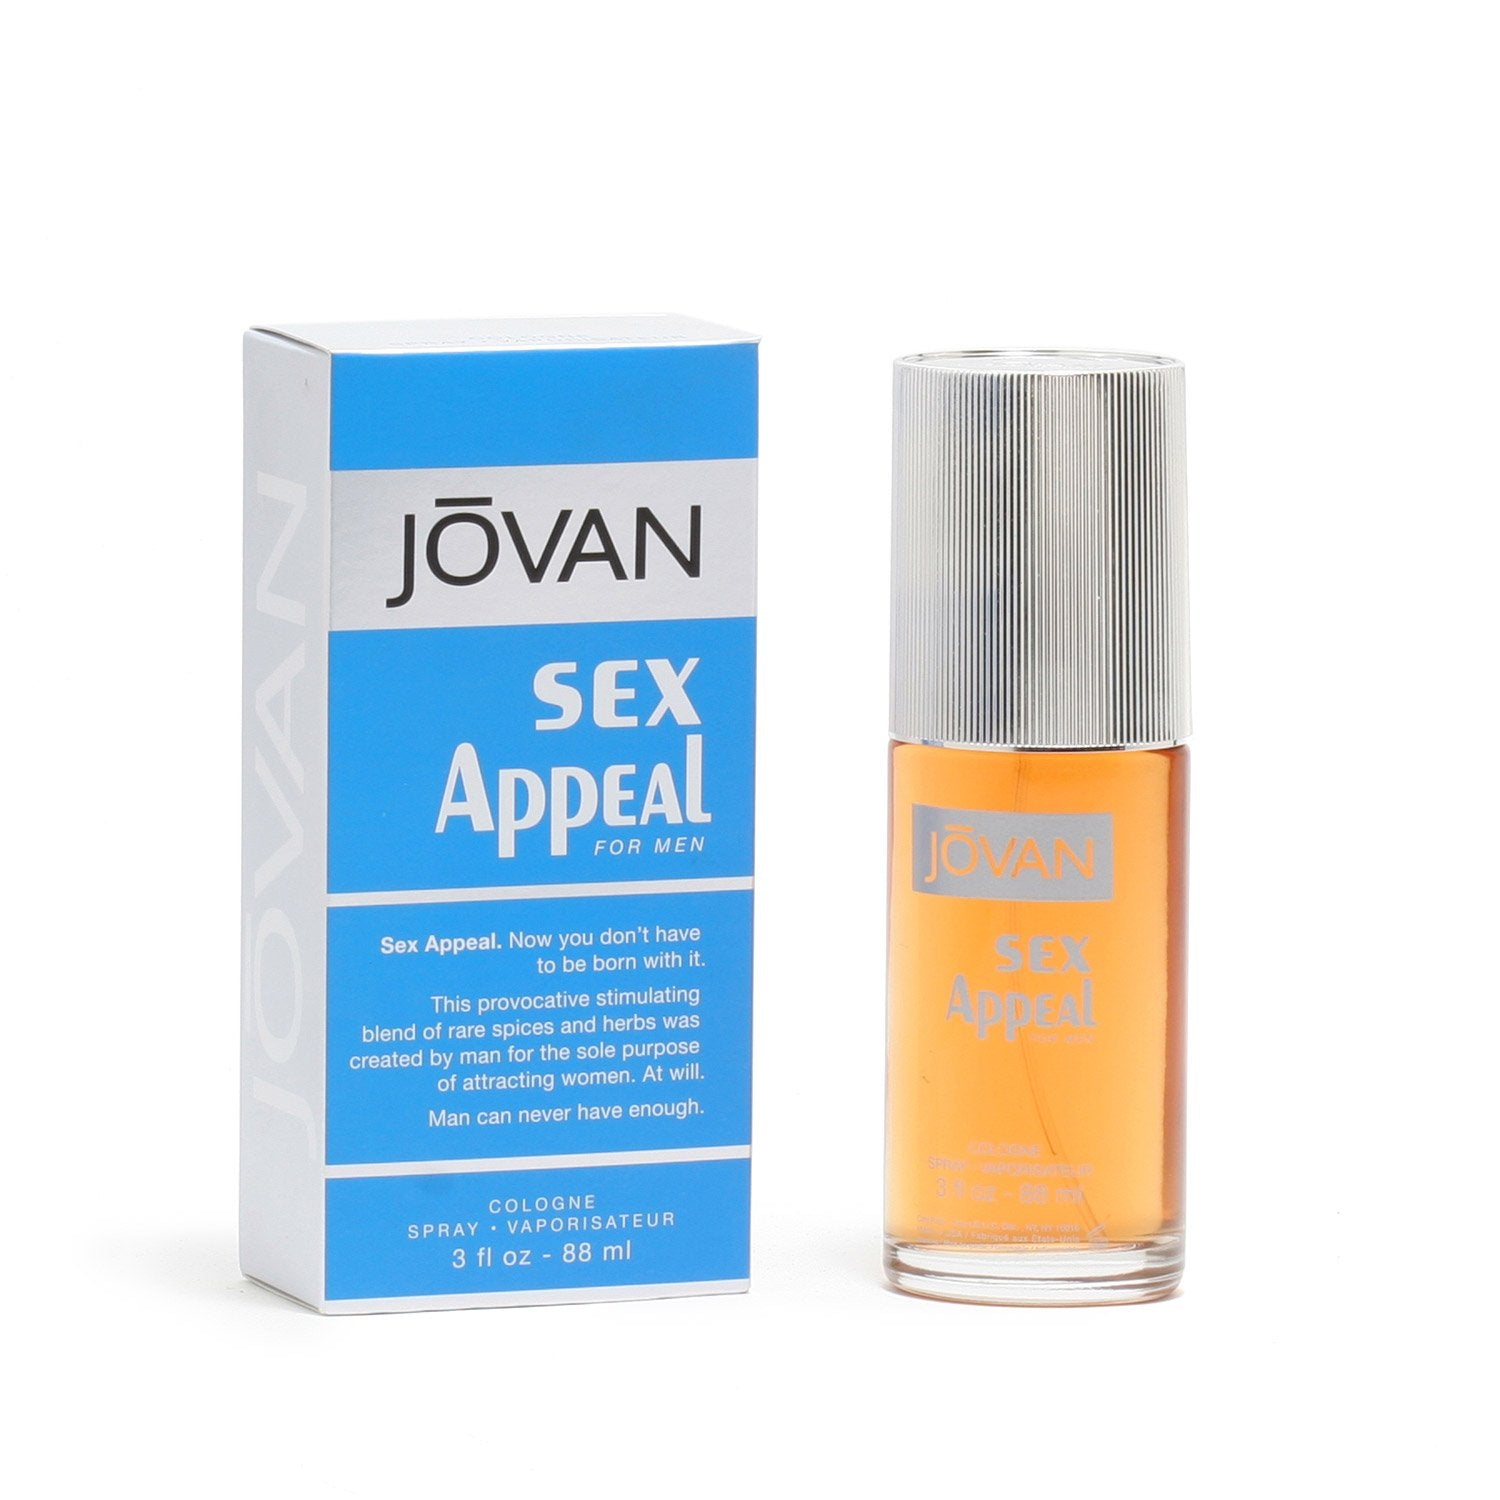 Cologne - JOVAN SEX APPEAL FOR MEN - COLOGNE SPRAY, 3.0 OZ